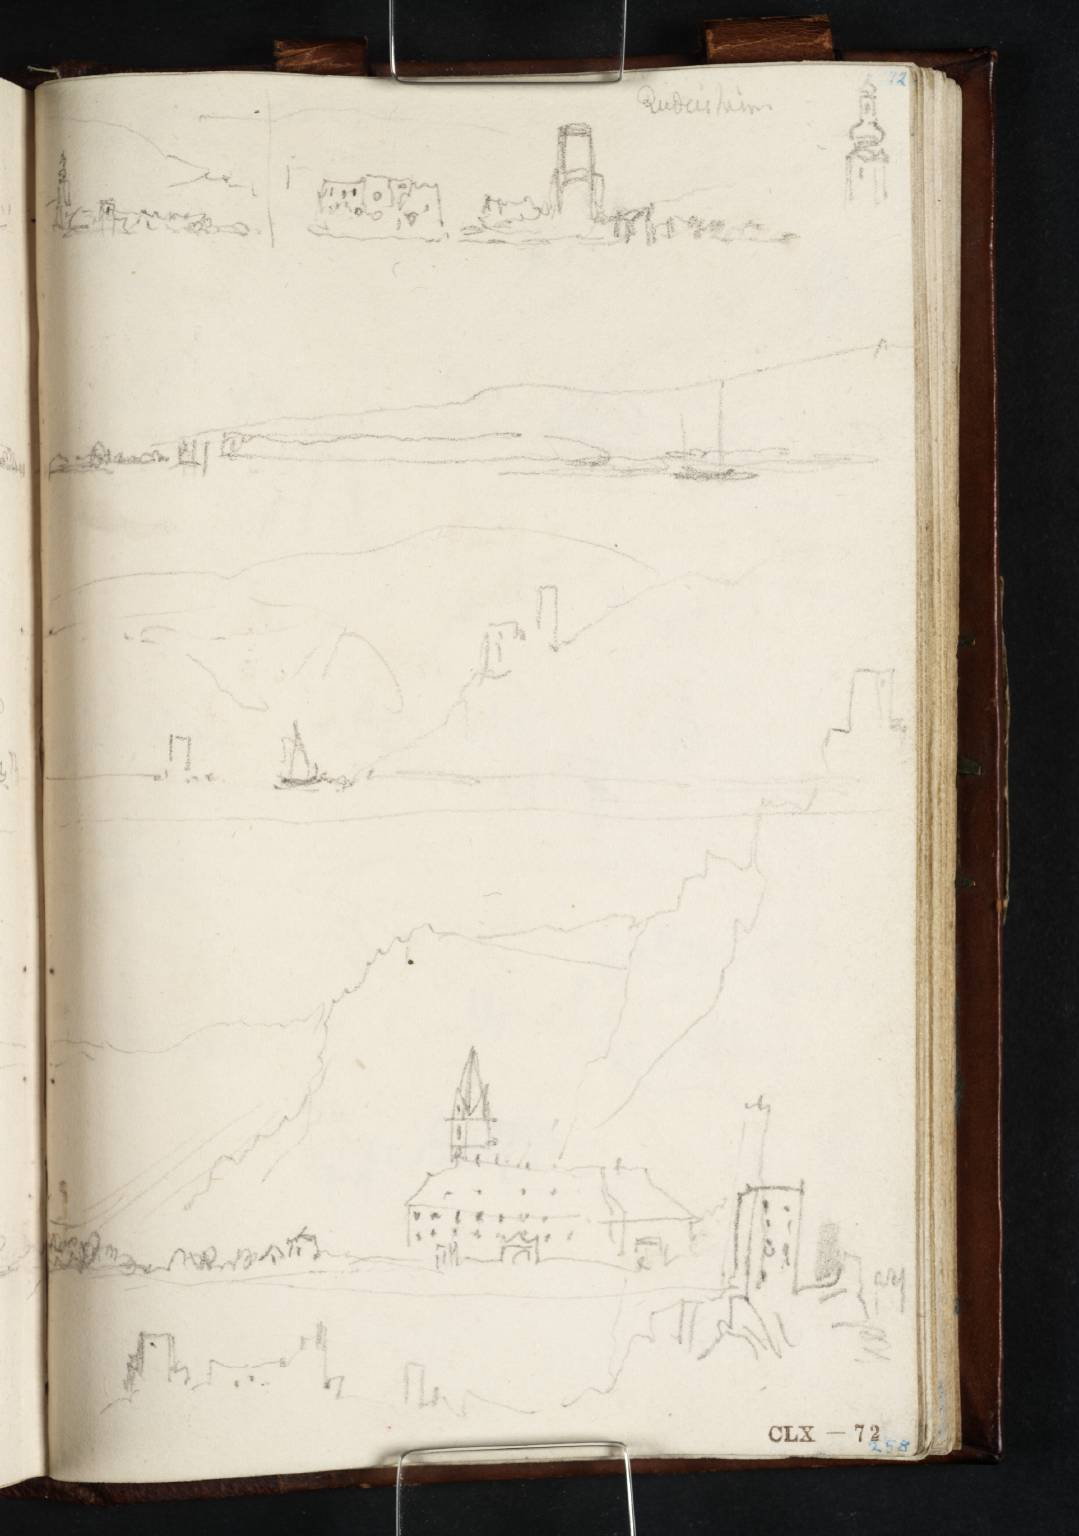 Joseph Mallord William Turner; Views Downstream from Mid-River: (1) to Bingen and Rüdesheim (Sketch of R?ºdesheim to Right); (2) to St Roch's Chapel, Bingen and R?ºdesheim; (3) to Burg Klopp, Bingen, the Ma?ºseturm and Burg Ehrenfels; (4) to the Church at Bornhofen and 'The